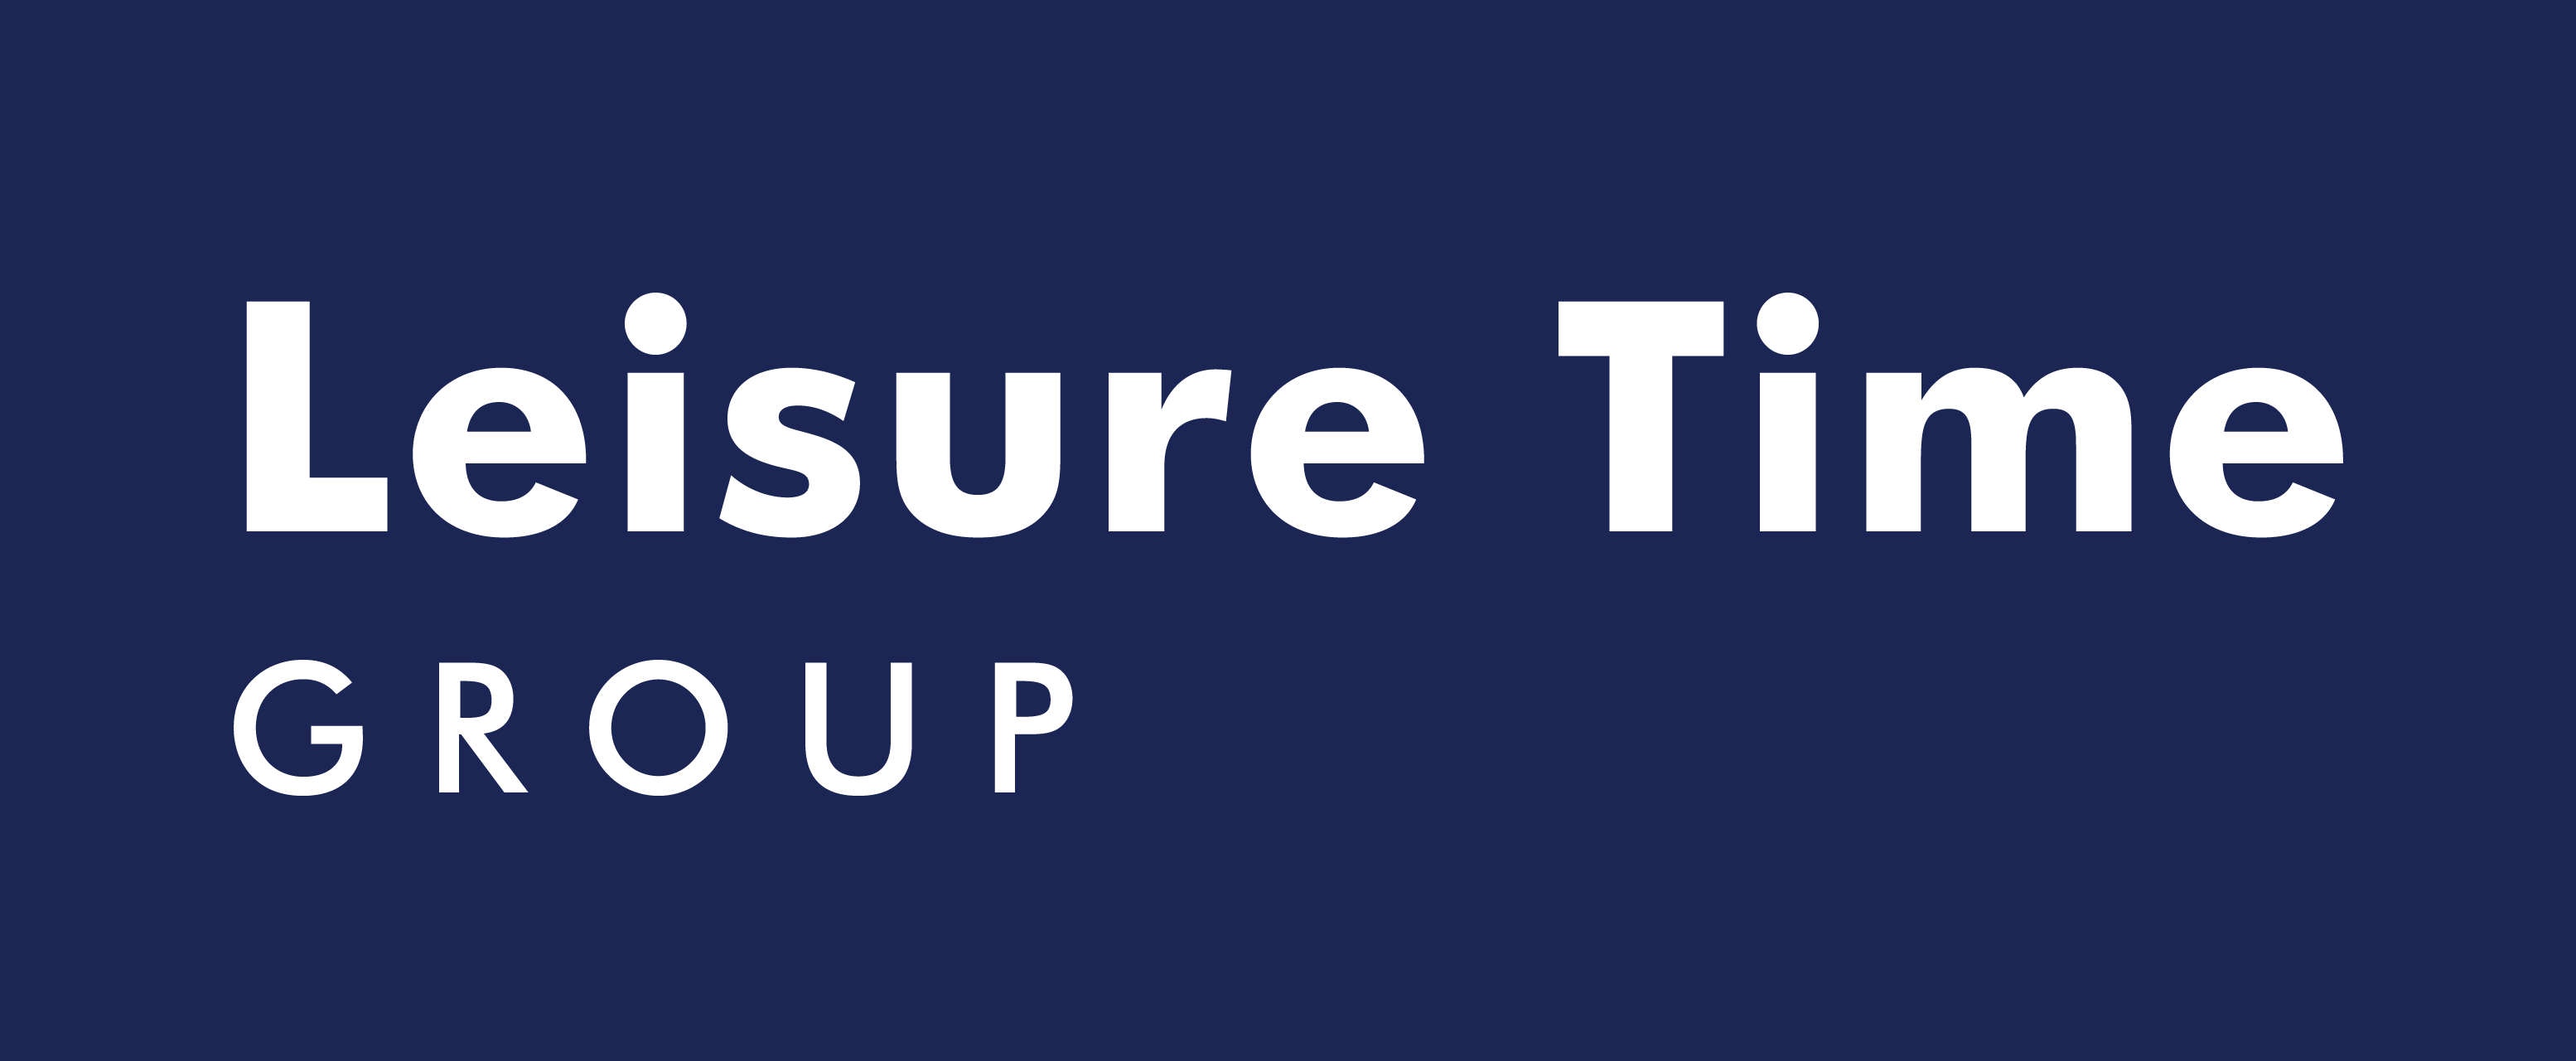 Leisure Time Group logo